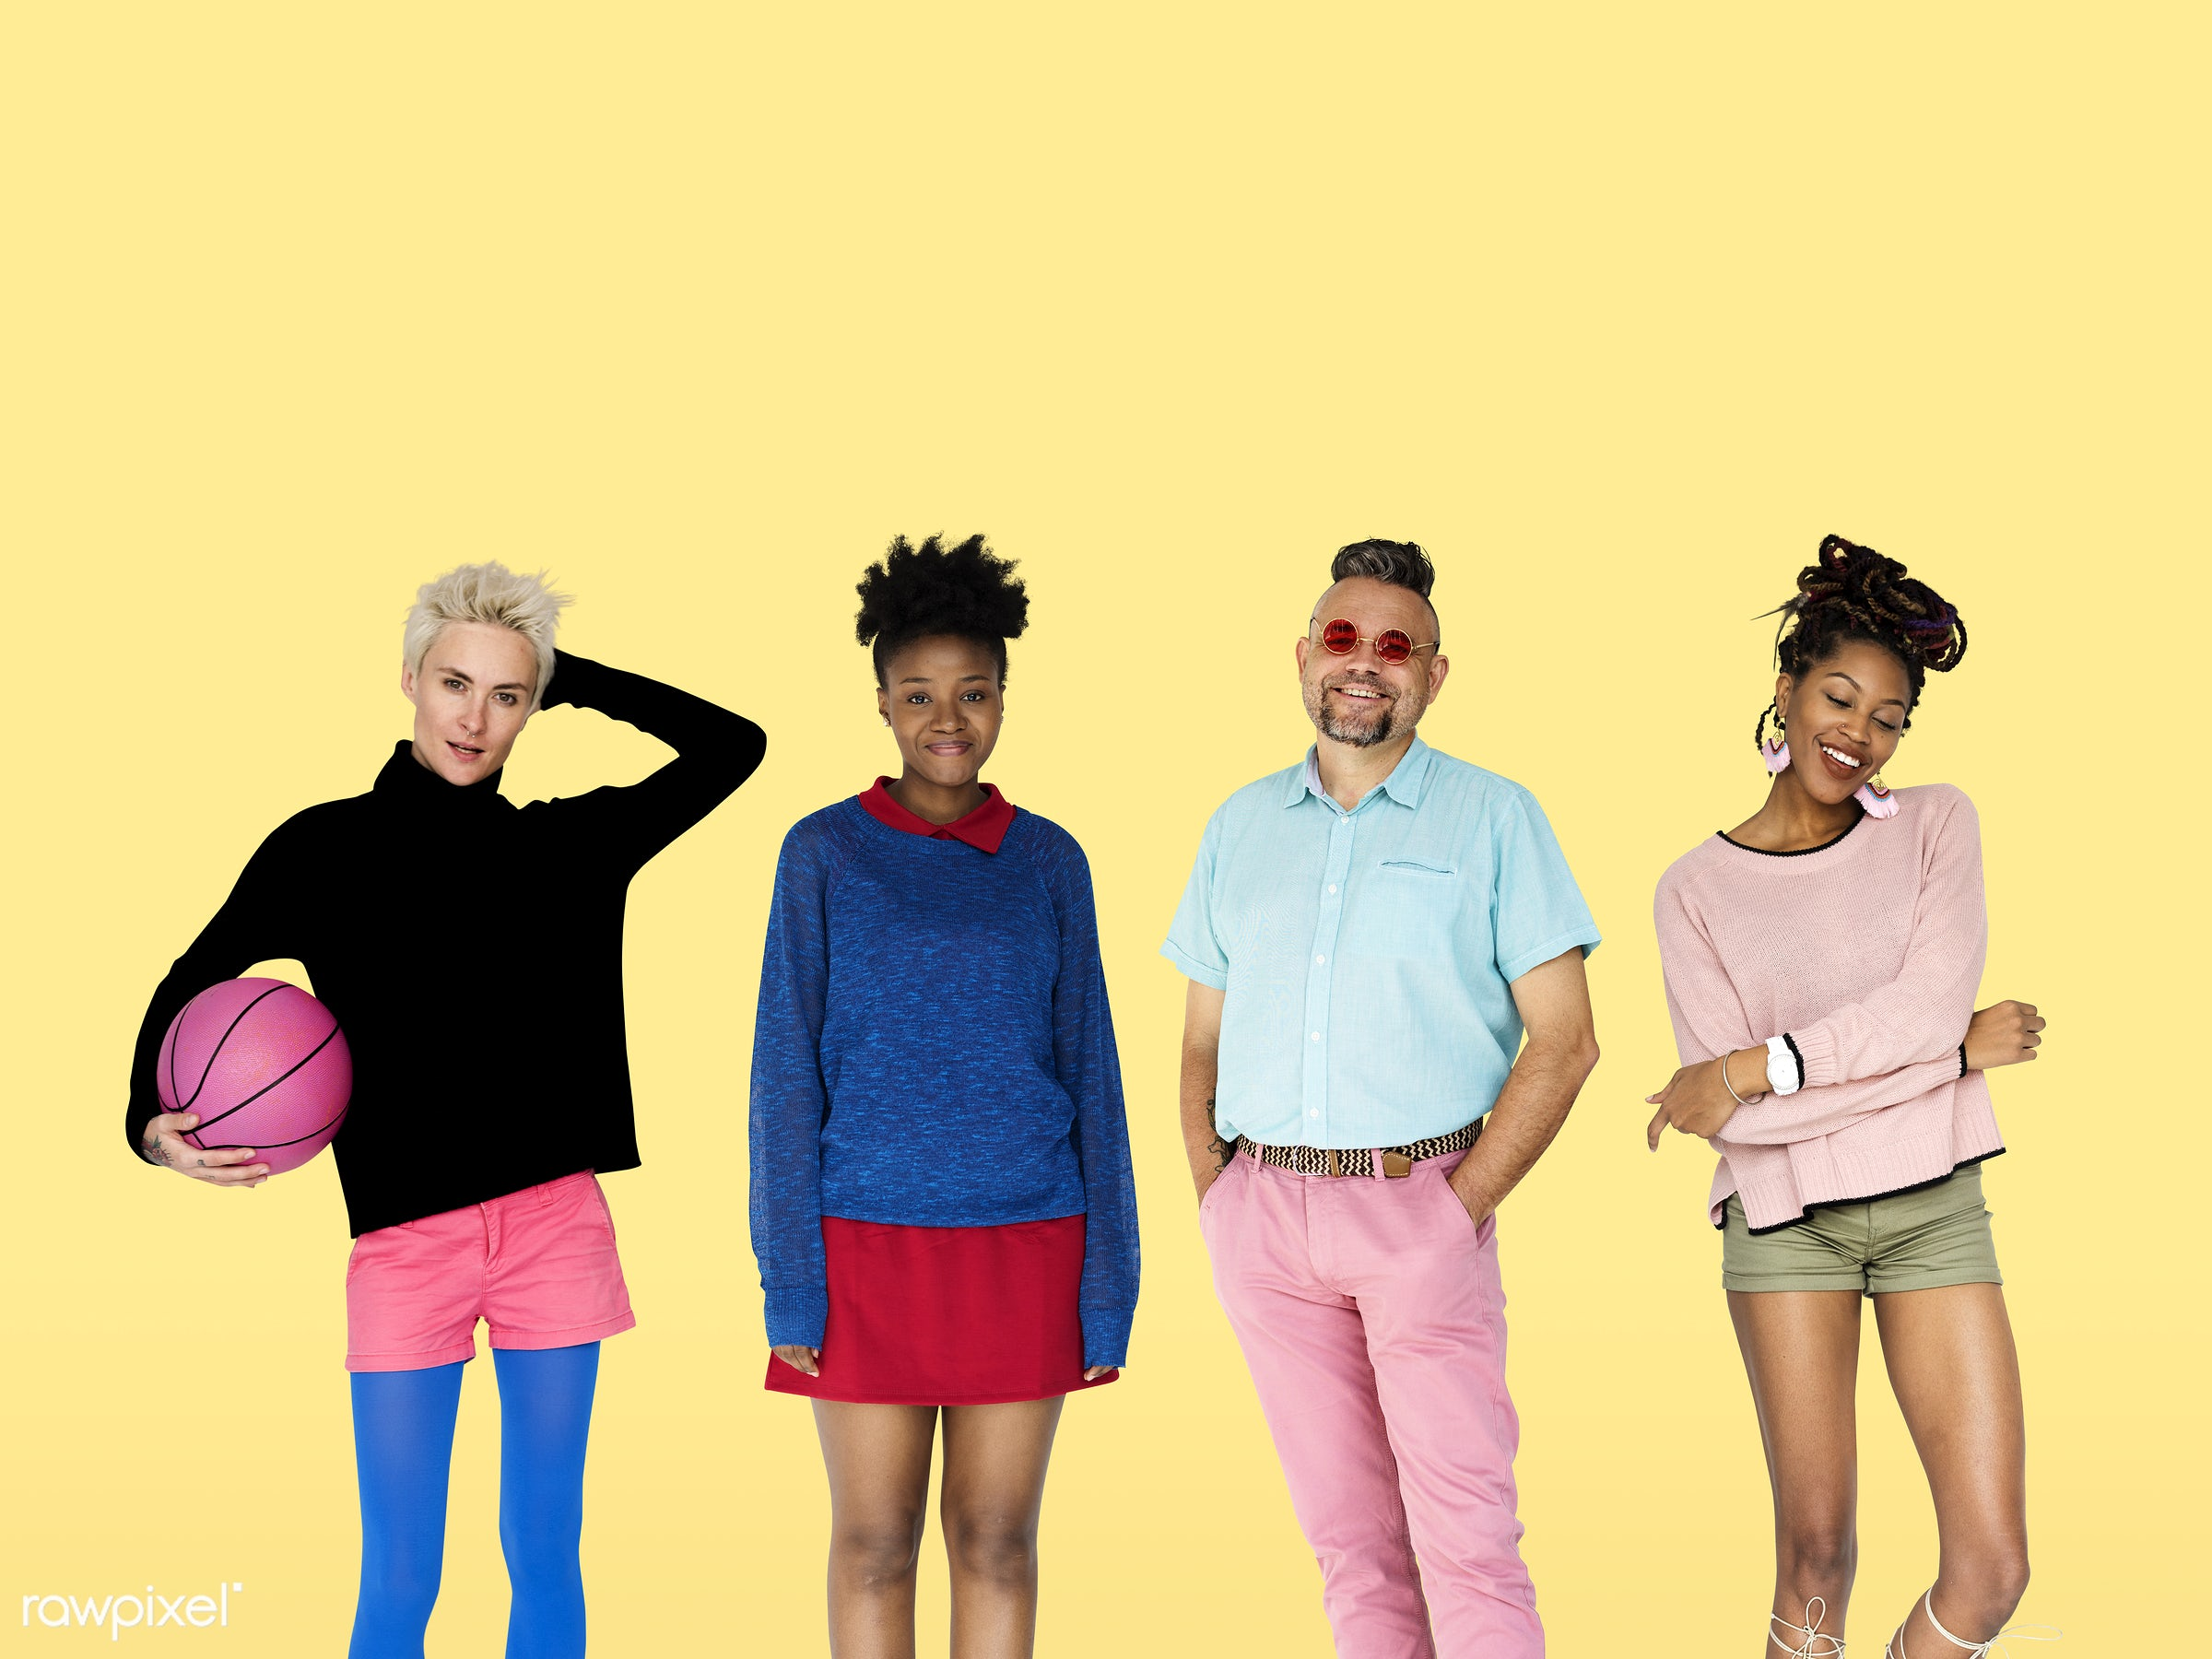 expression, studio, person, funky, diverse, colorful, set, retro, collection, people, race, together, caucasian, life, style...